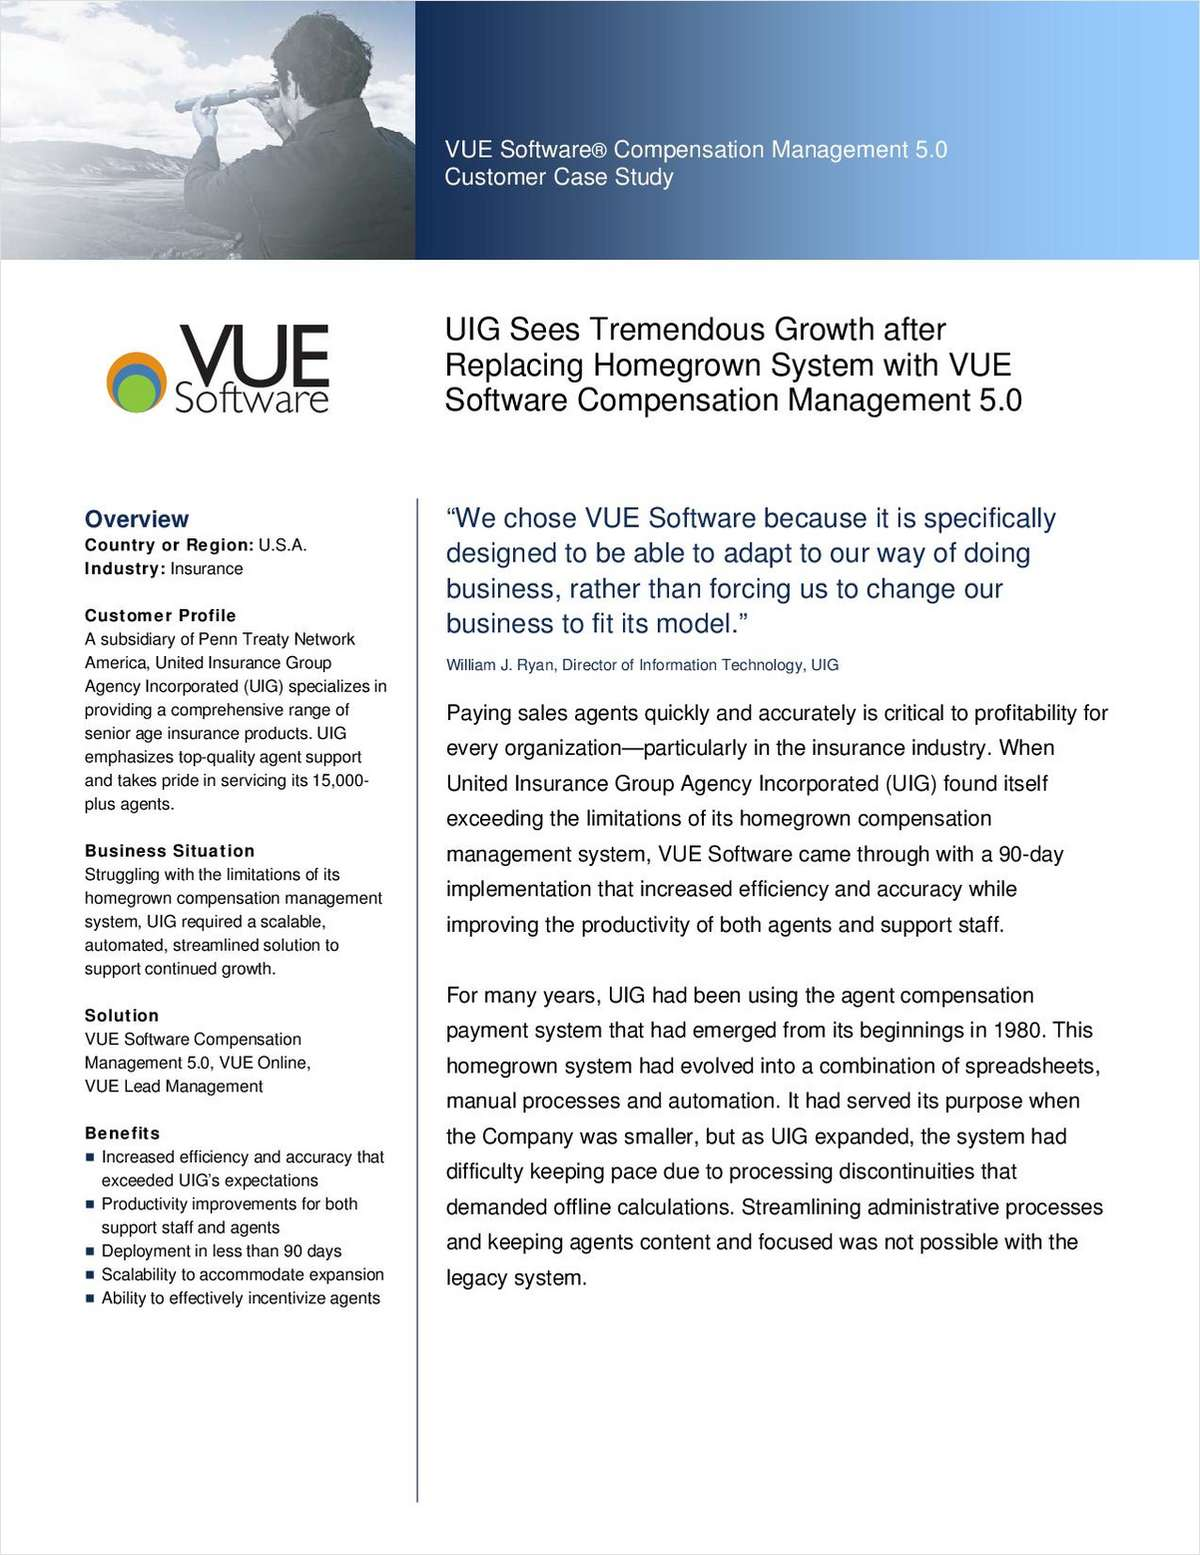 UIG Sees Tremendous Growth after Replacing Homegrown System with VUE Software Compensation Management 5.0